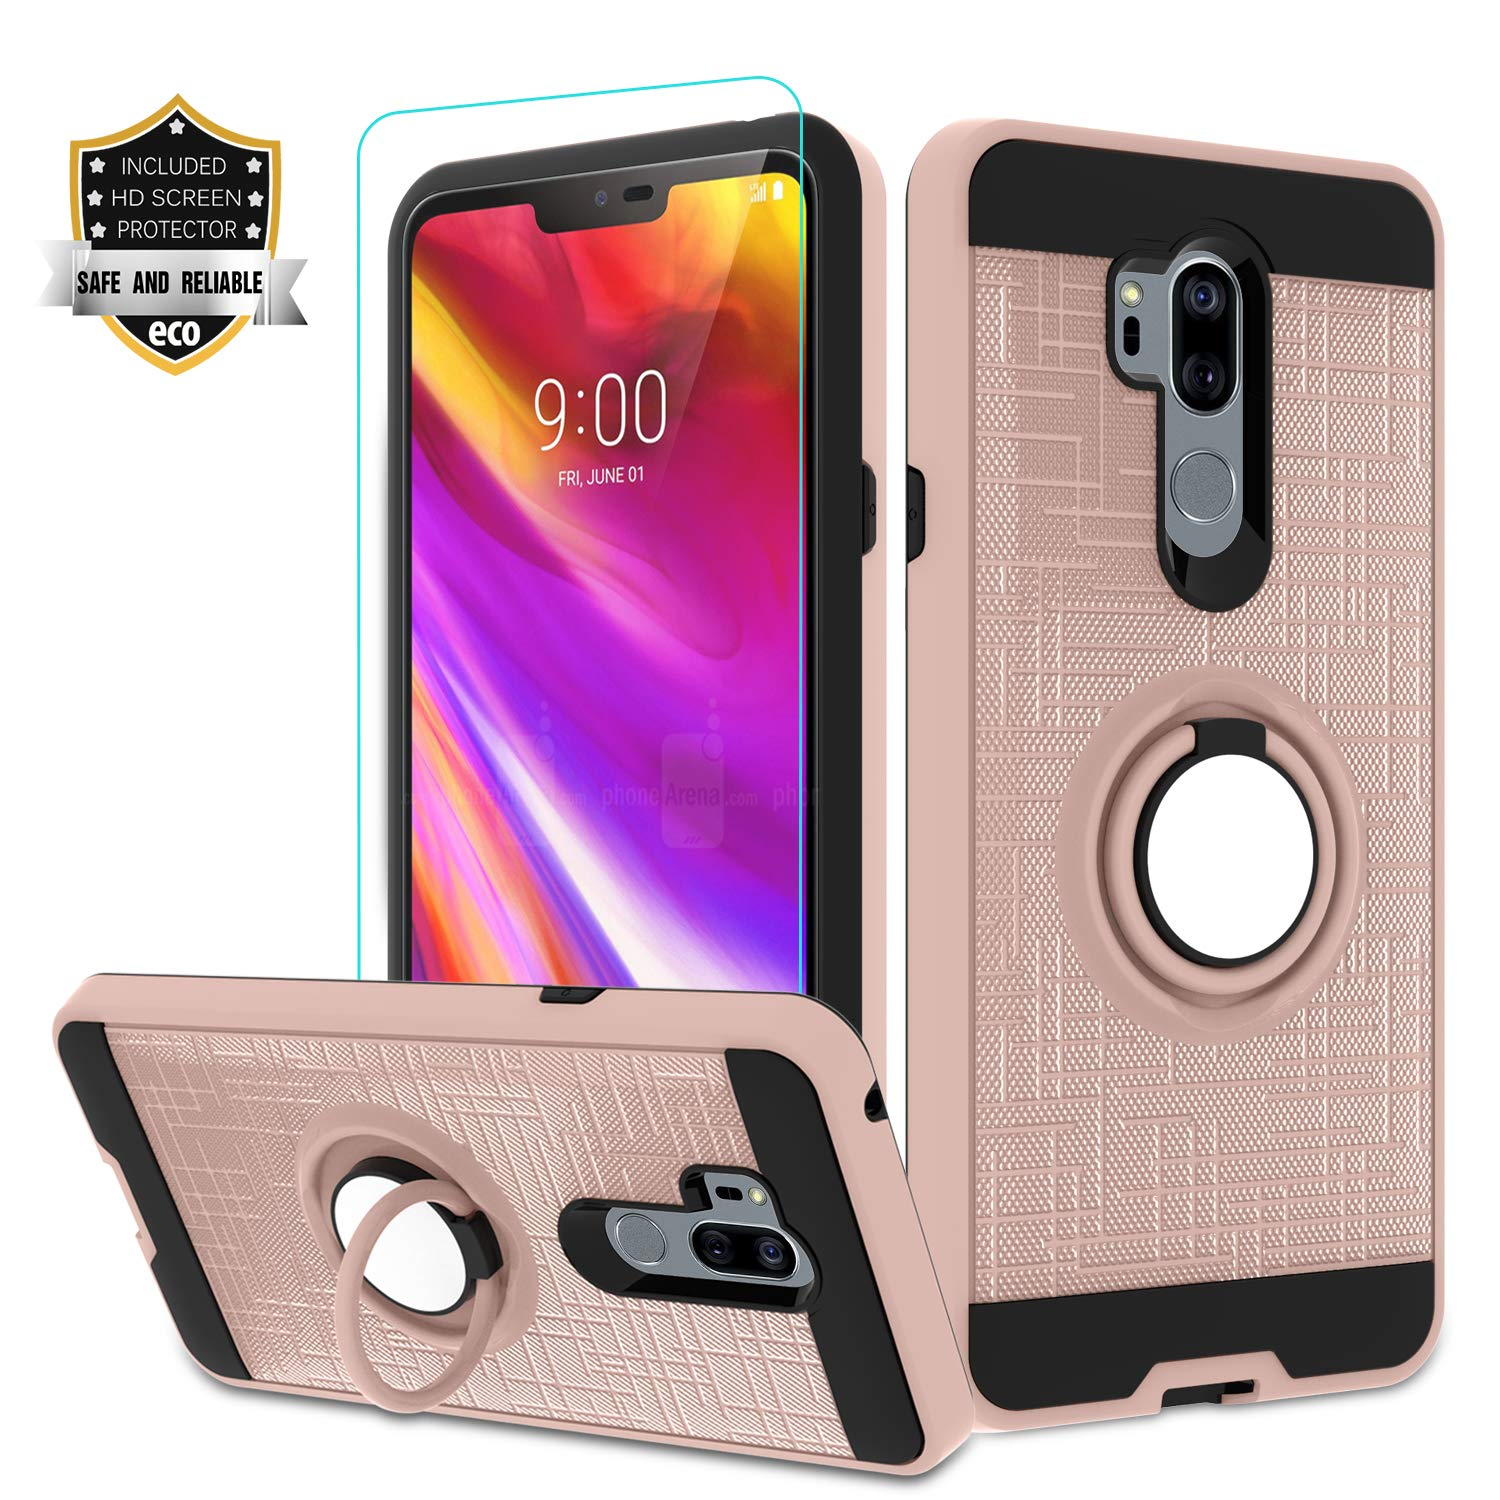 LG G7 Phone Case LG G7 ThinQ Case with HD Screen Protector,Atump 360 Degree Rotating Ring Holder Kickstand Bracket Cover Phone Case for LG G7 Rose Gold